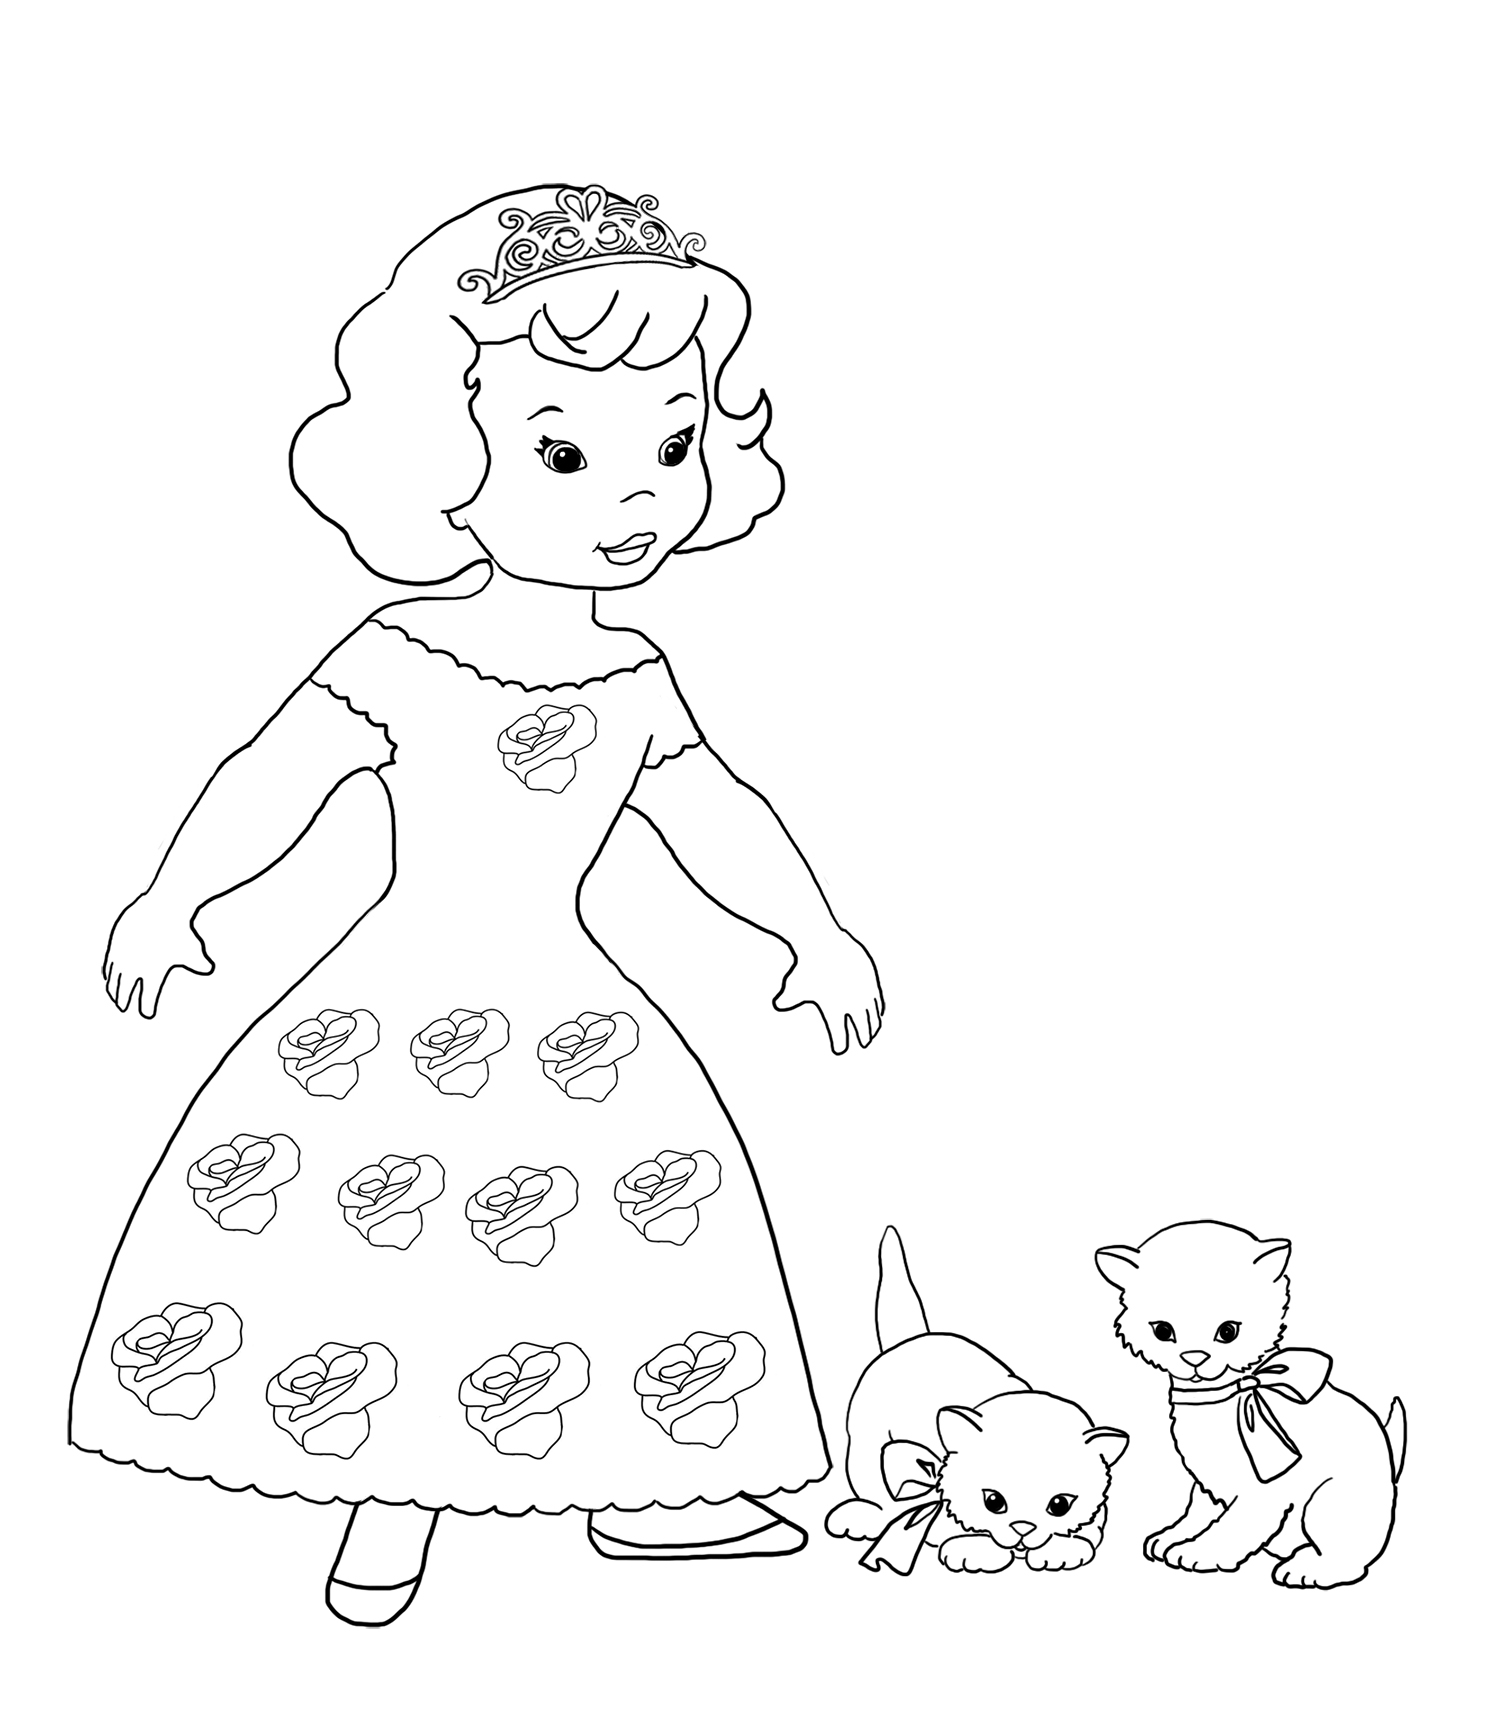 Coloring page with princess and kittens